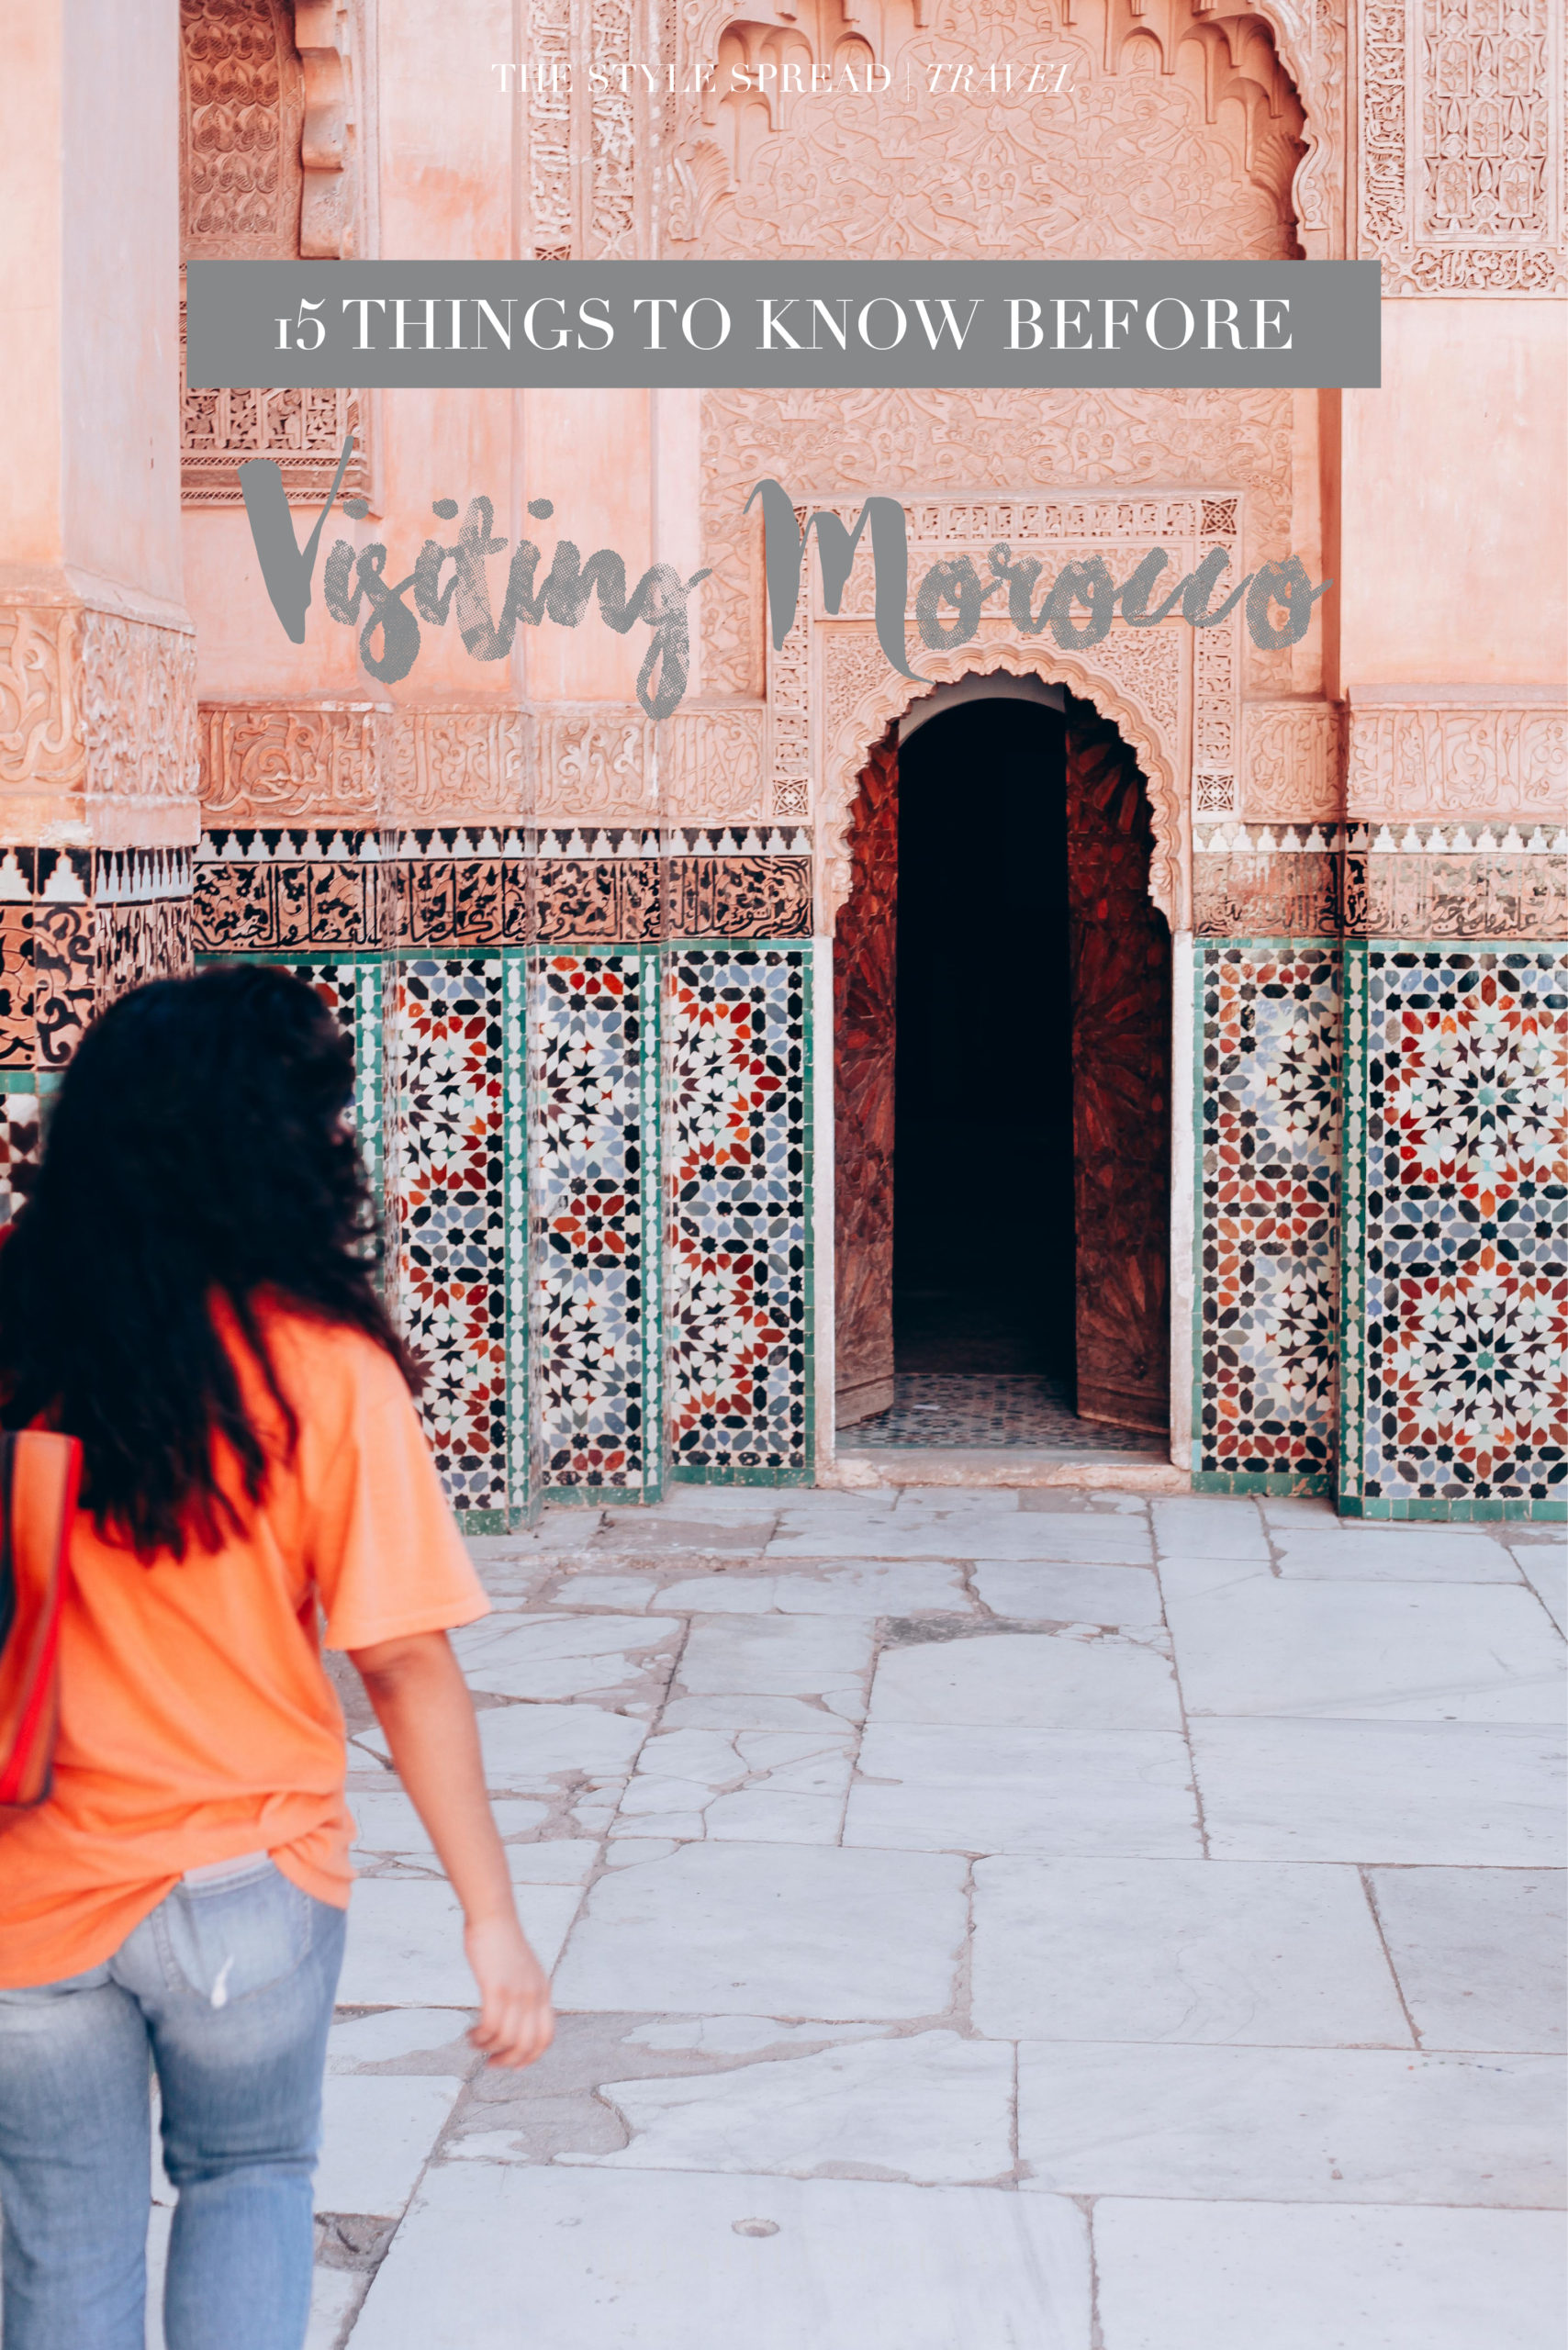 15 Things to Know Before Visiting Morocco